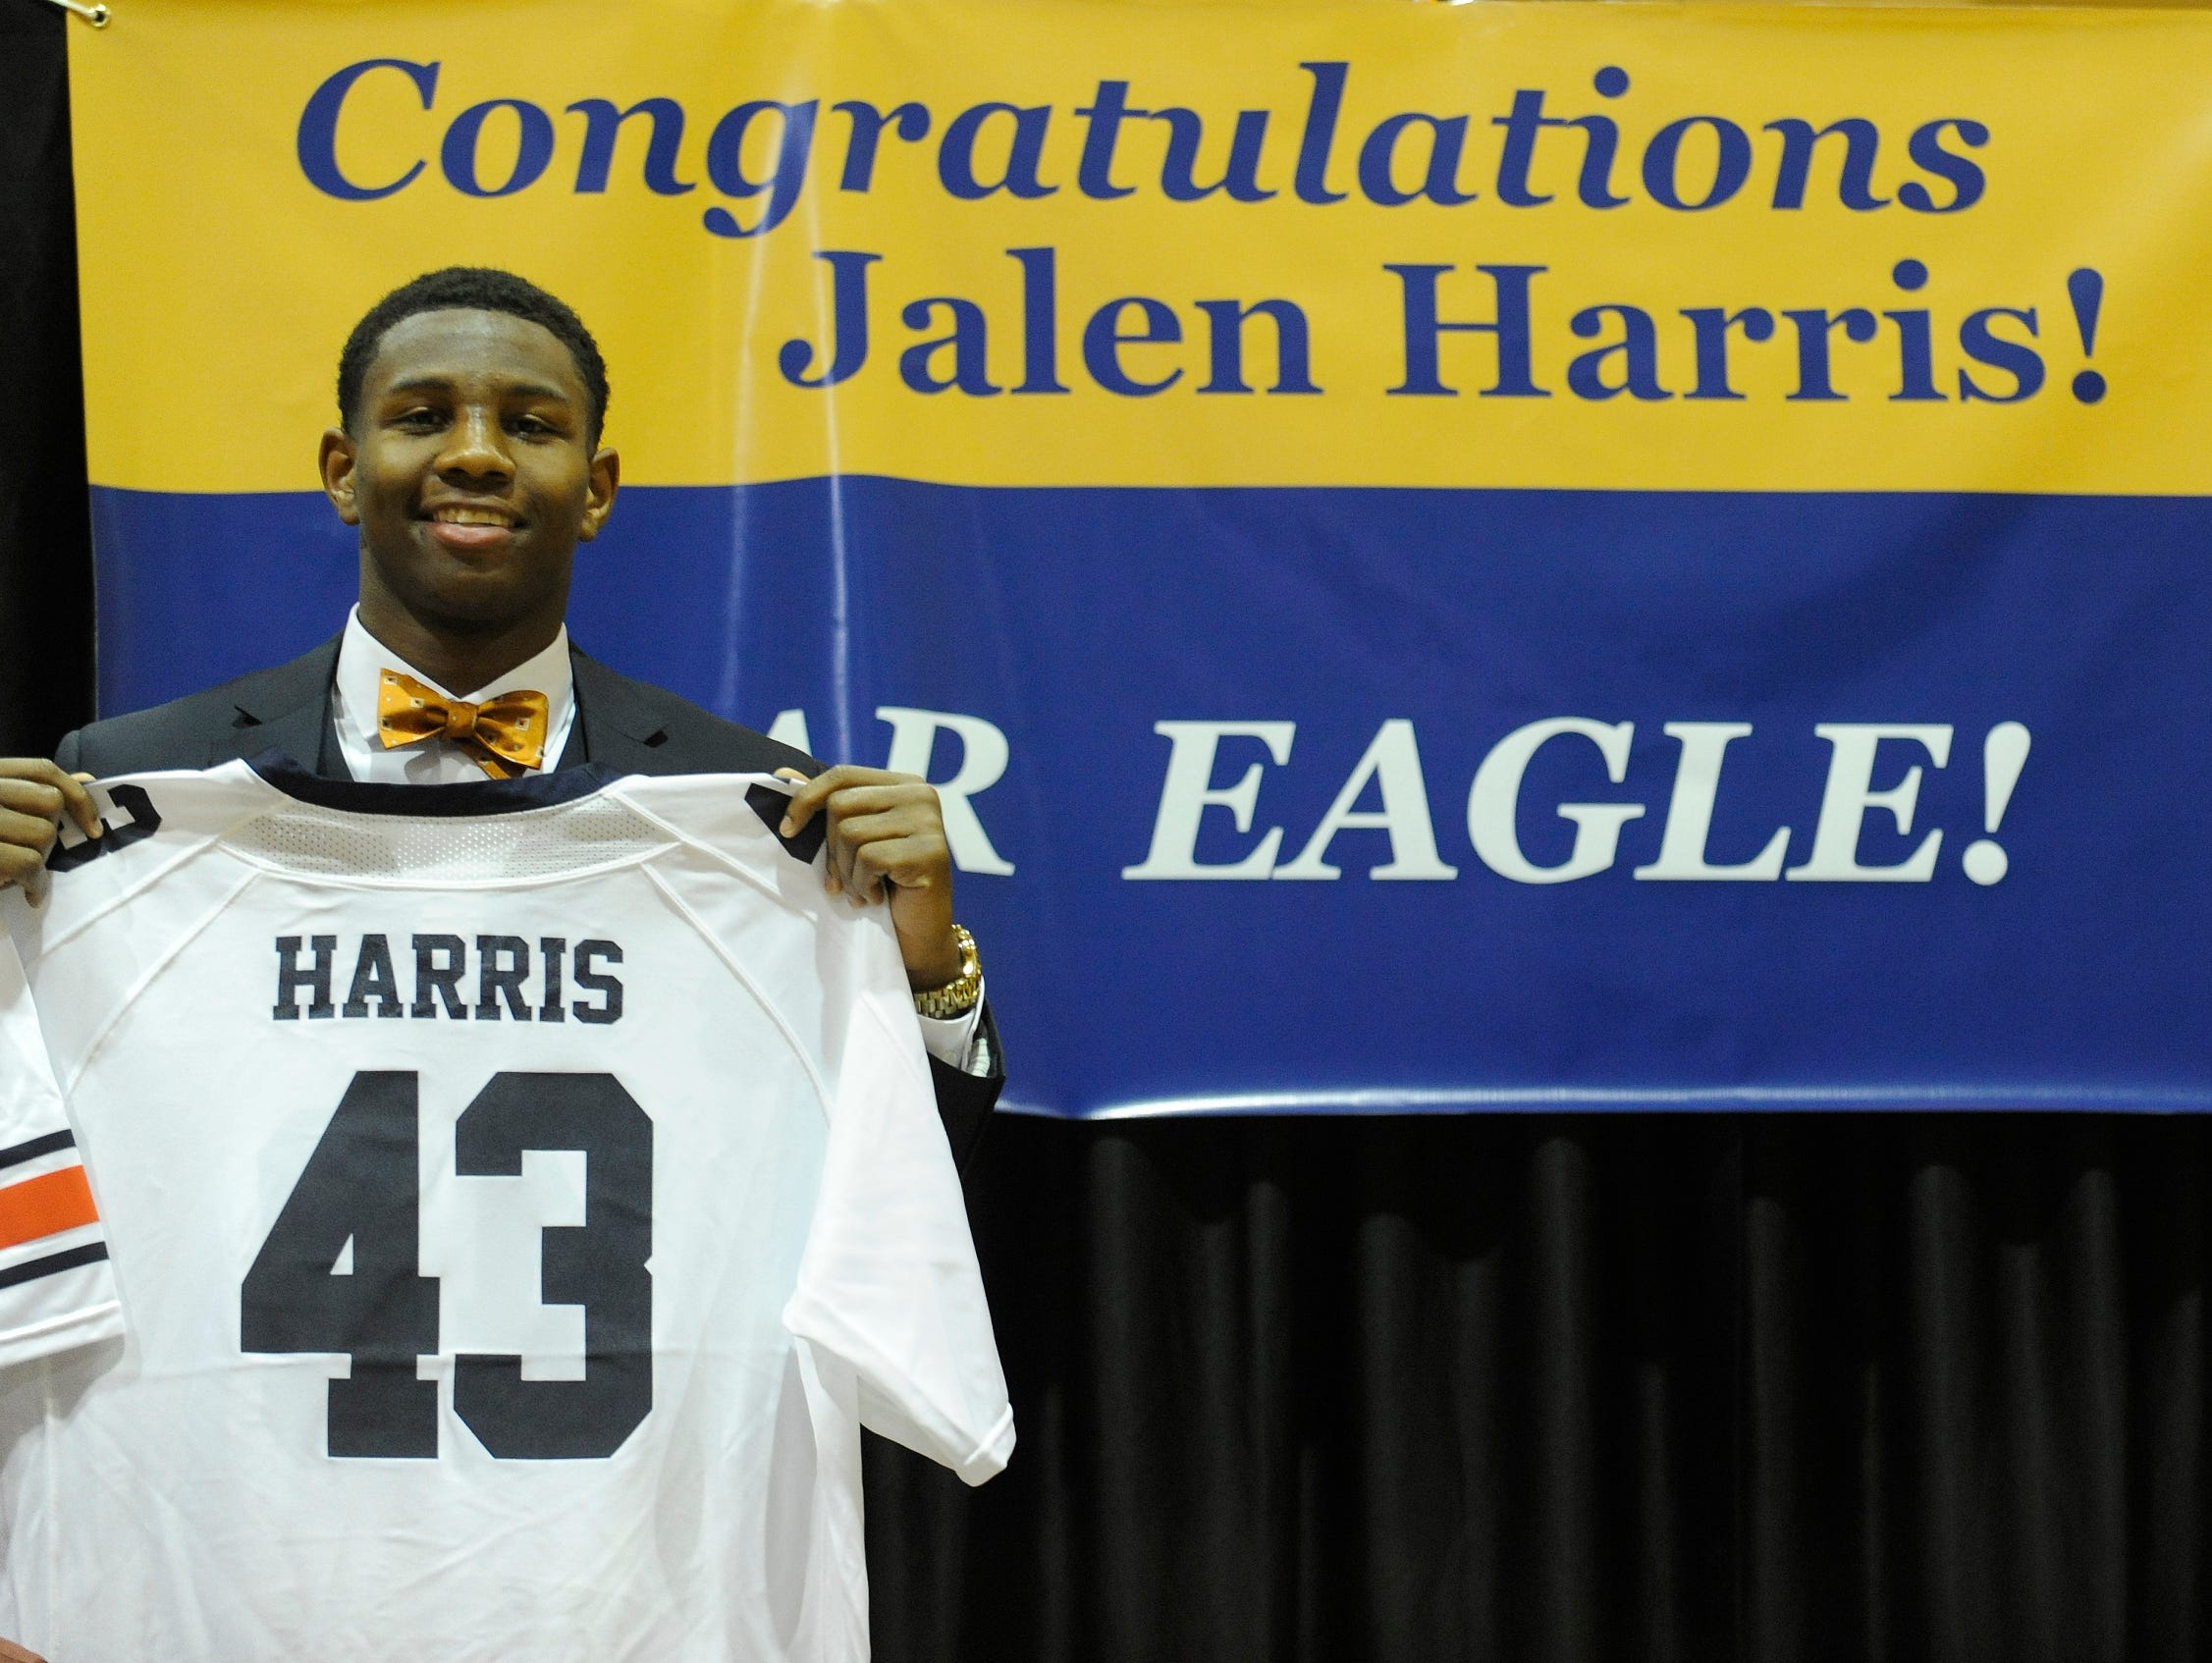 St. James High School's Jalen Harris holds up an Auburn Jersey with his name on it as he announces that he is signing to play college football at Auburn on Wednesday February 4, 2015 at St. James in Montgomery, Ala.